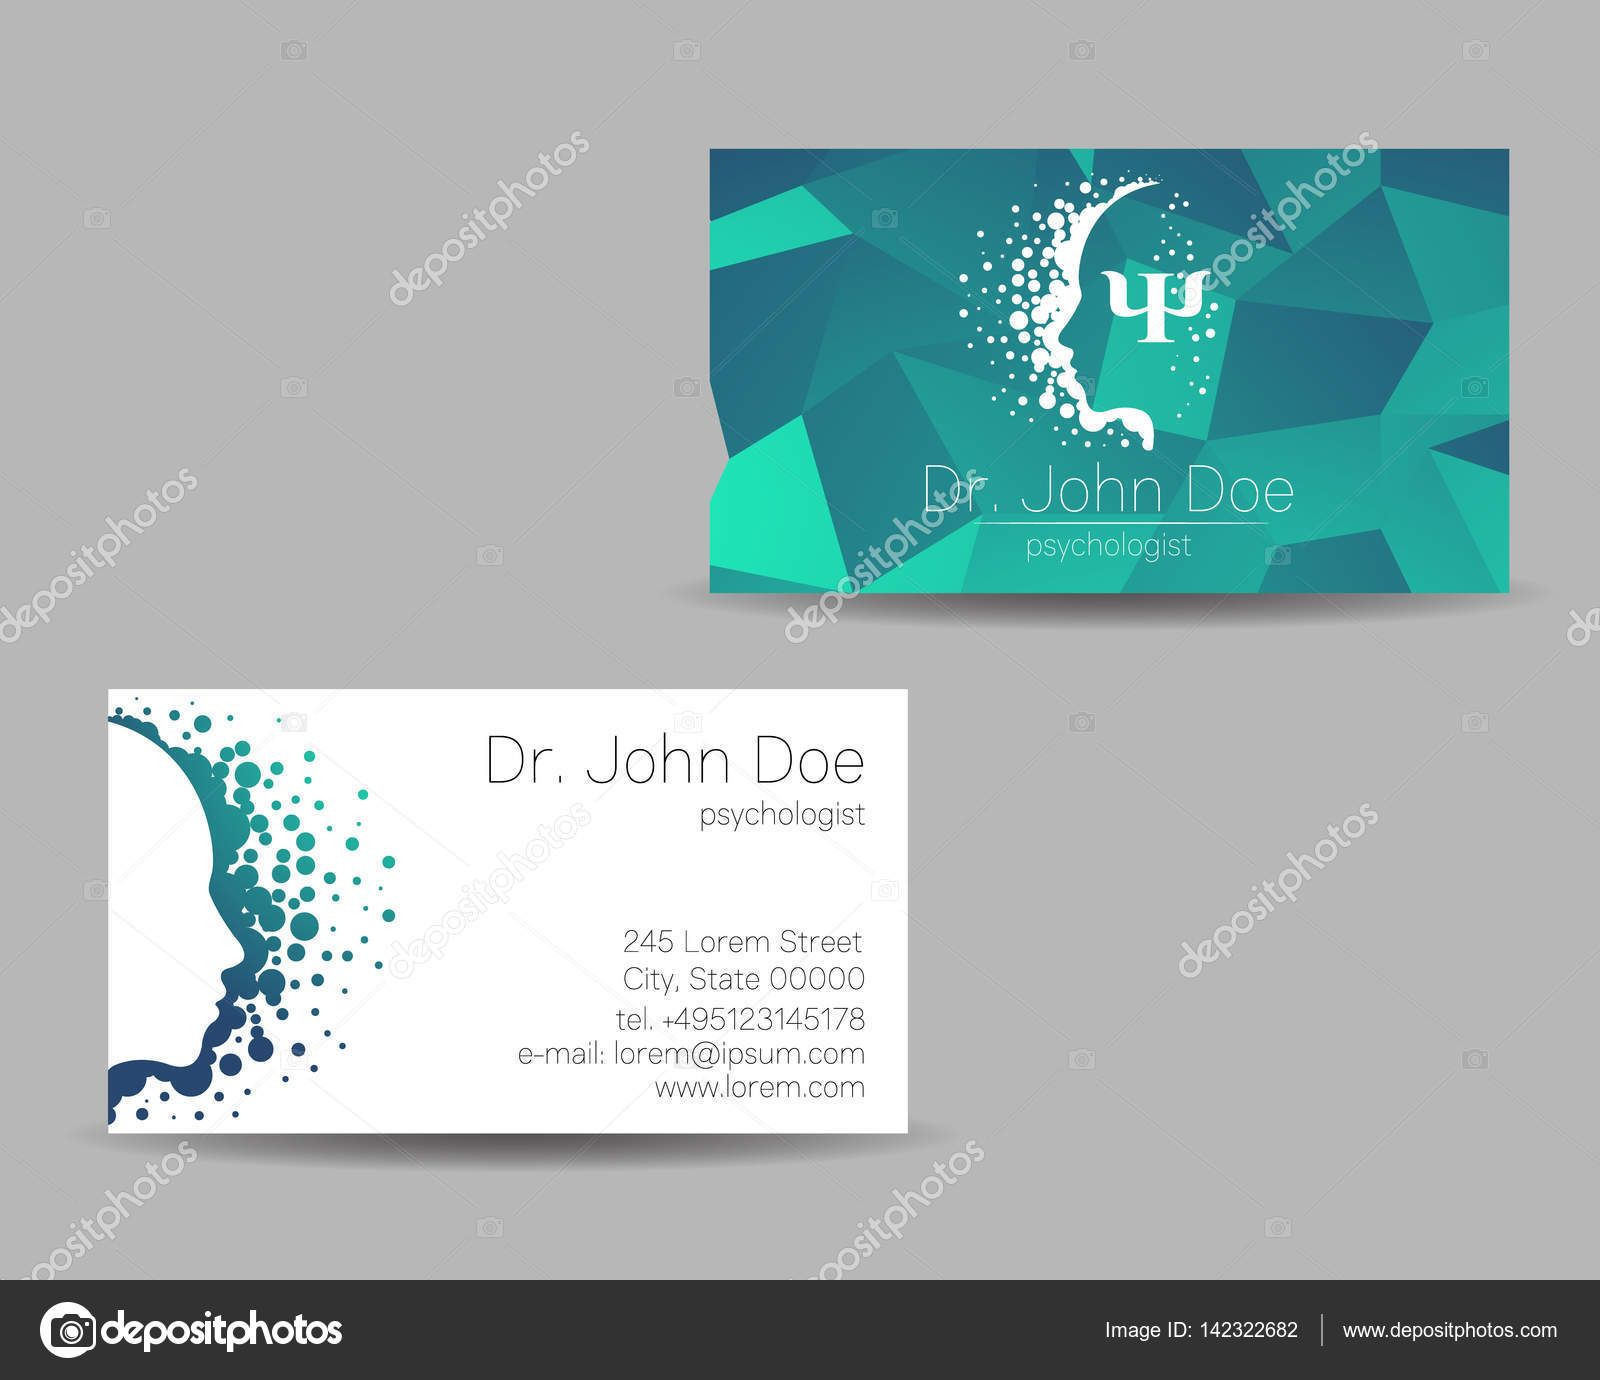 Image result for clinical psychologist business cards logo image result for clinical psychologist business cards magicingreecefo Choice Image